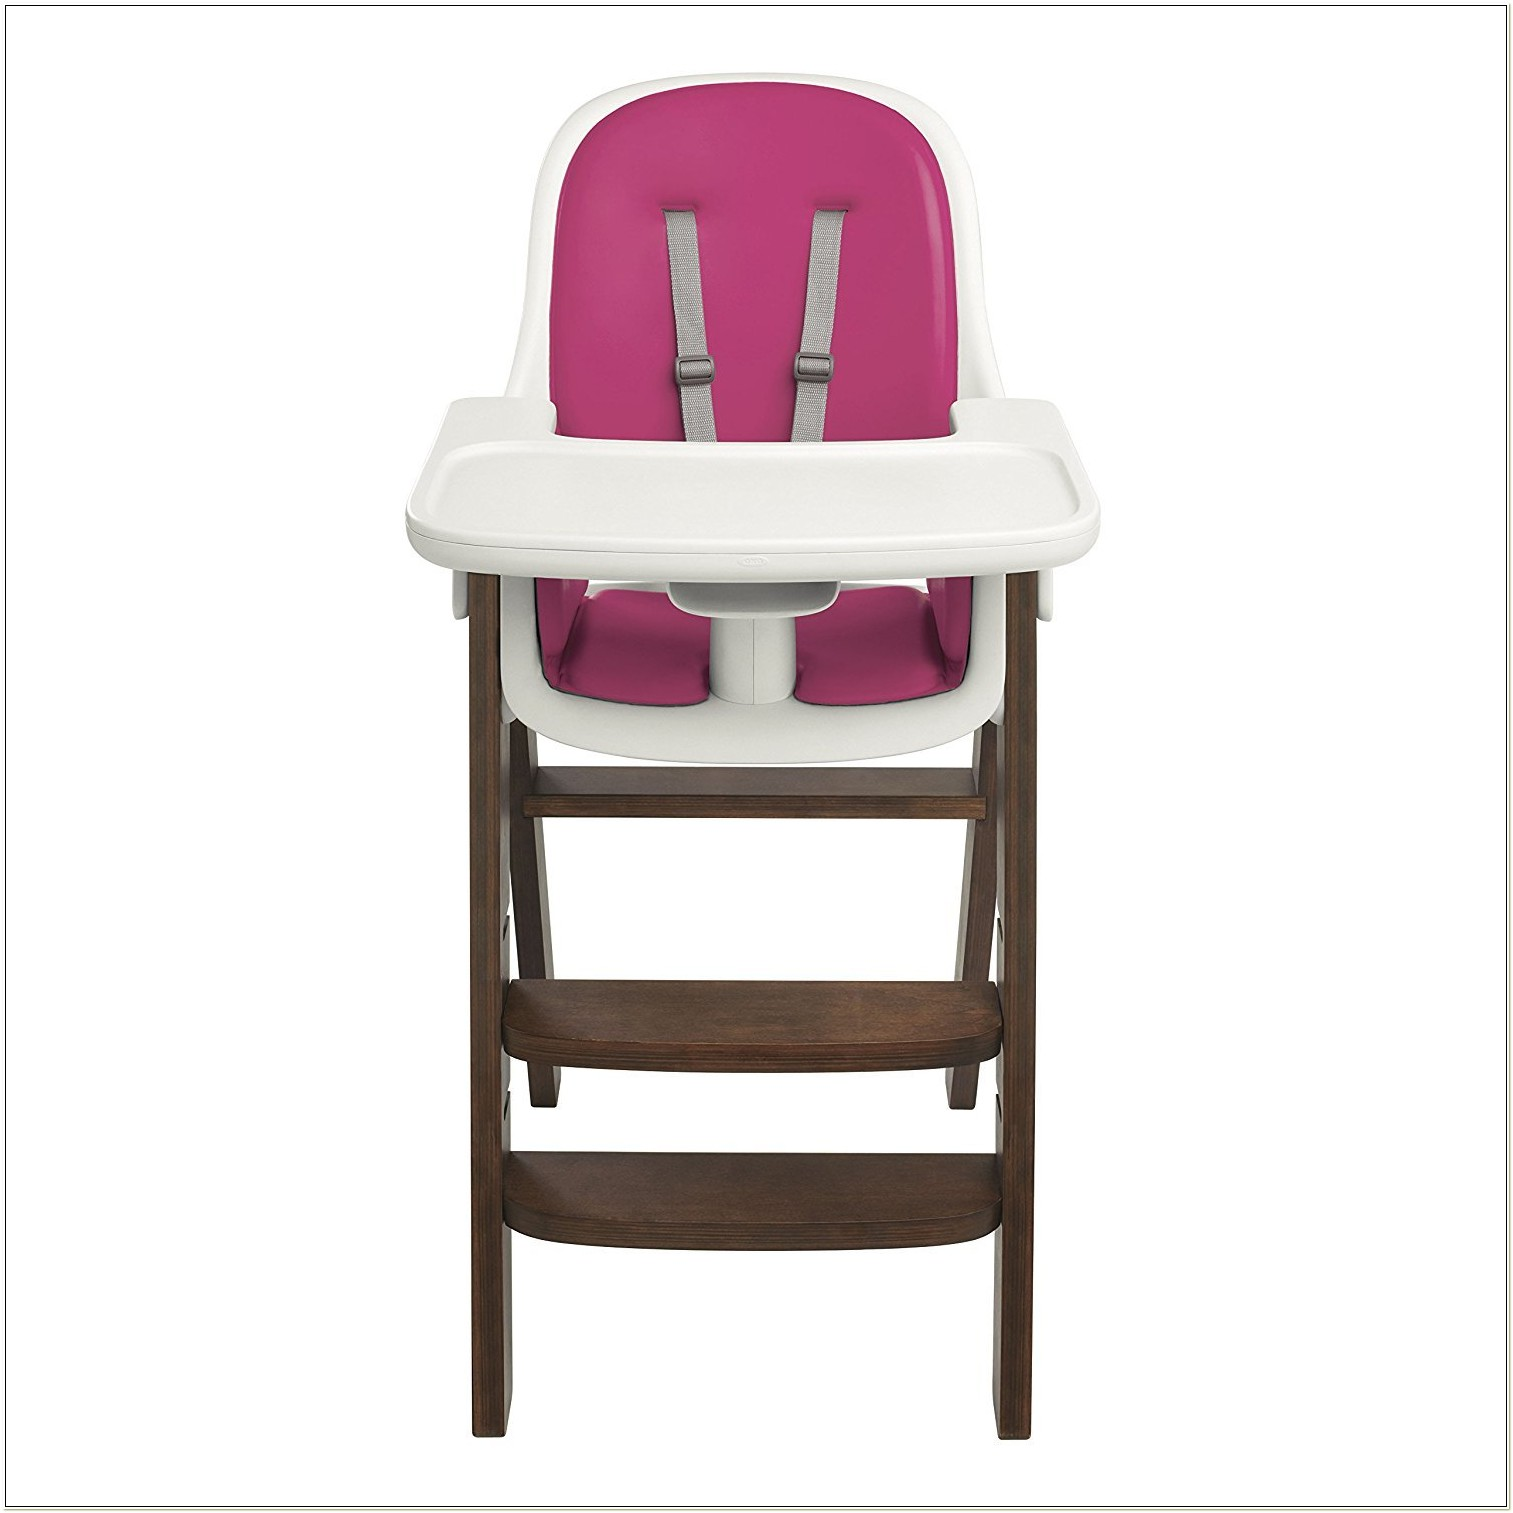 Oxo Tot Sprout High Chair Pink